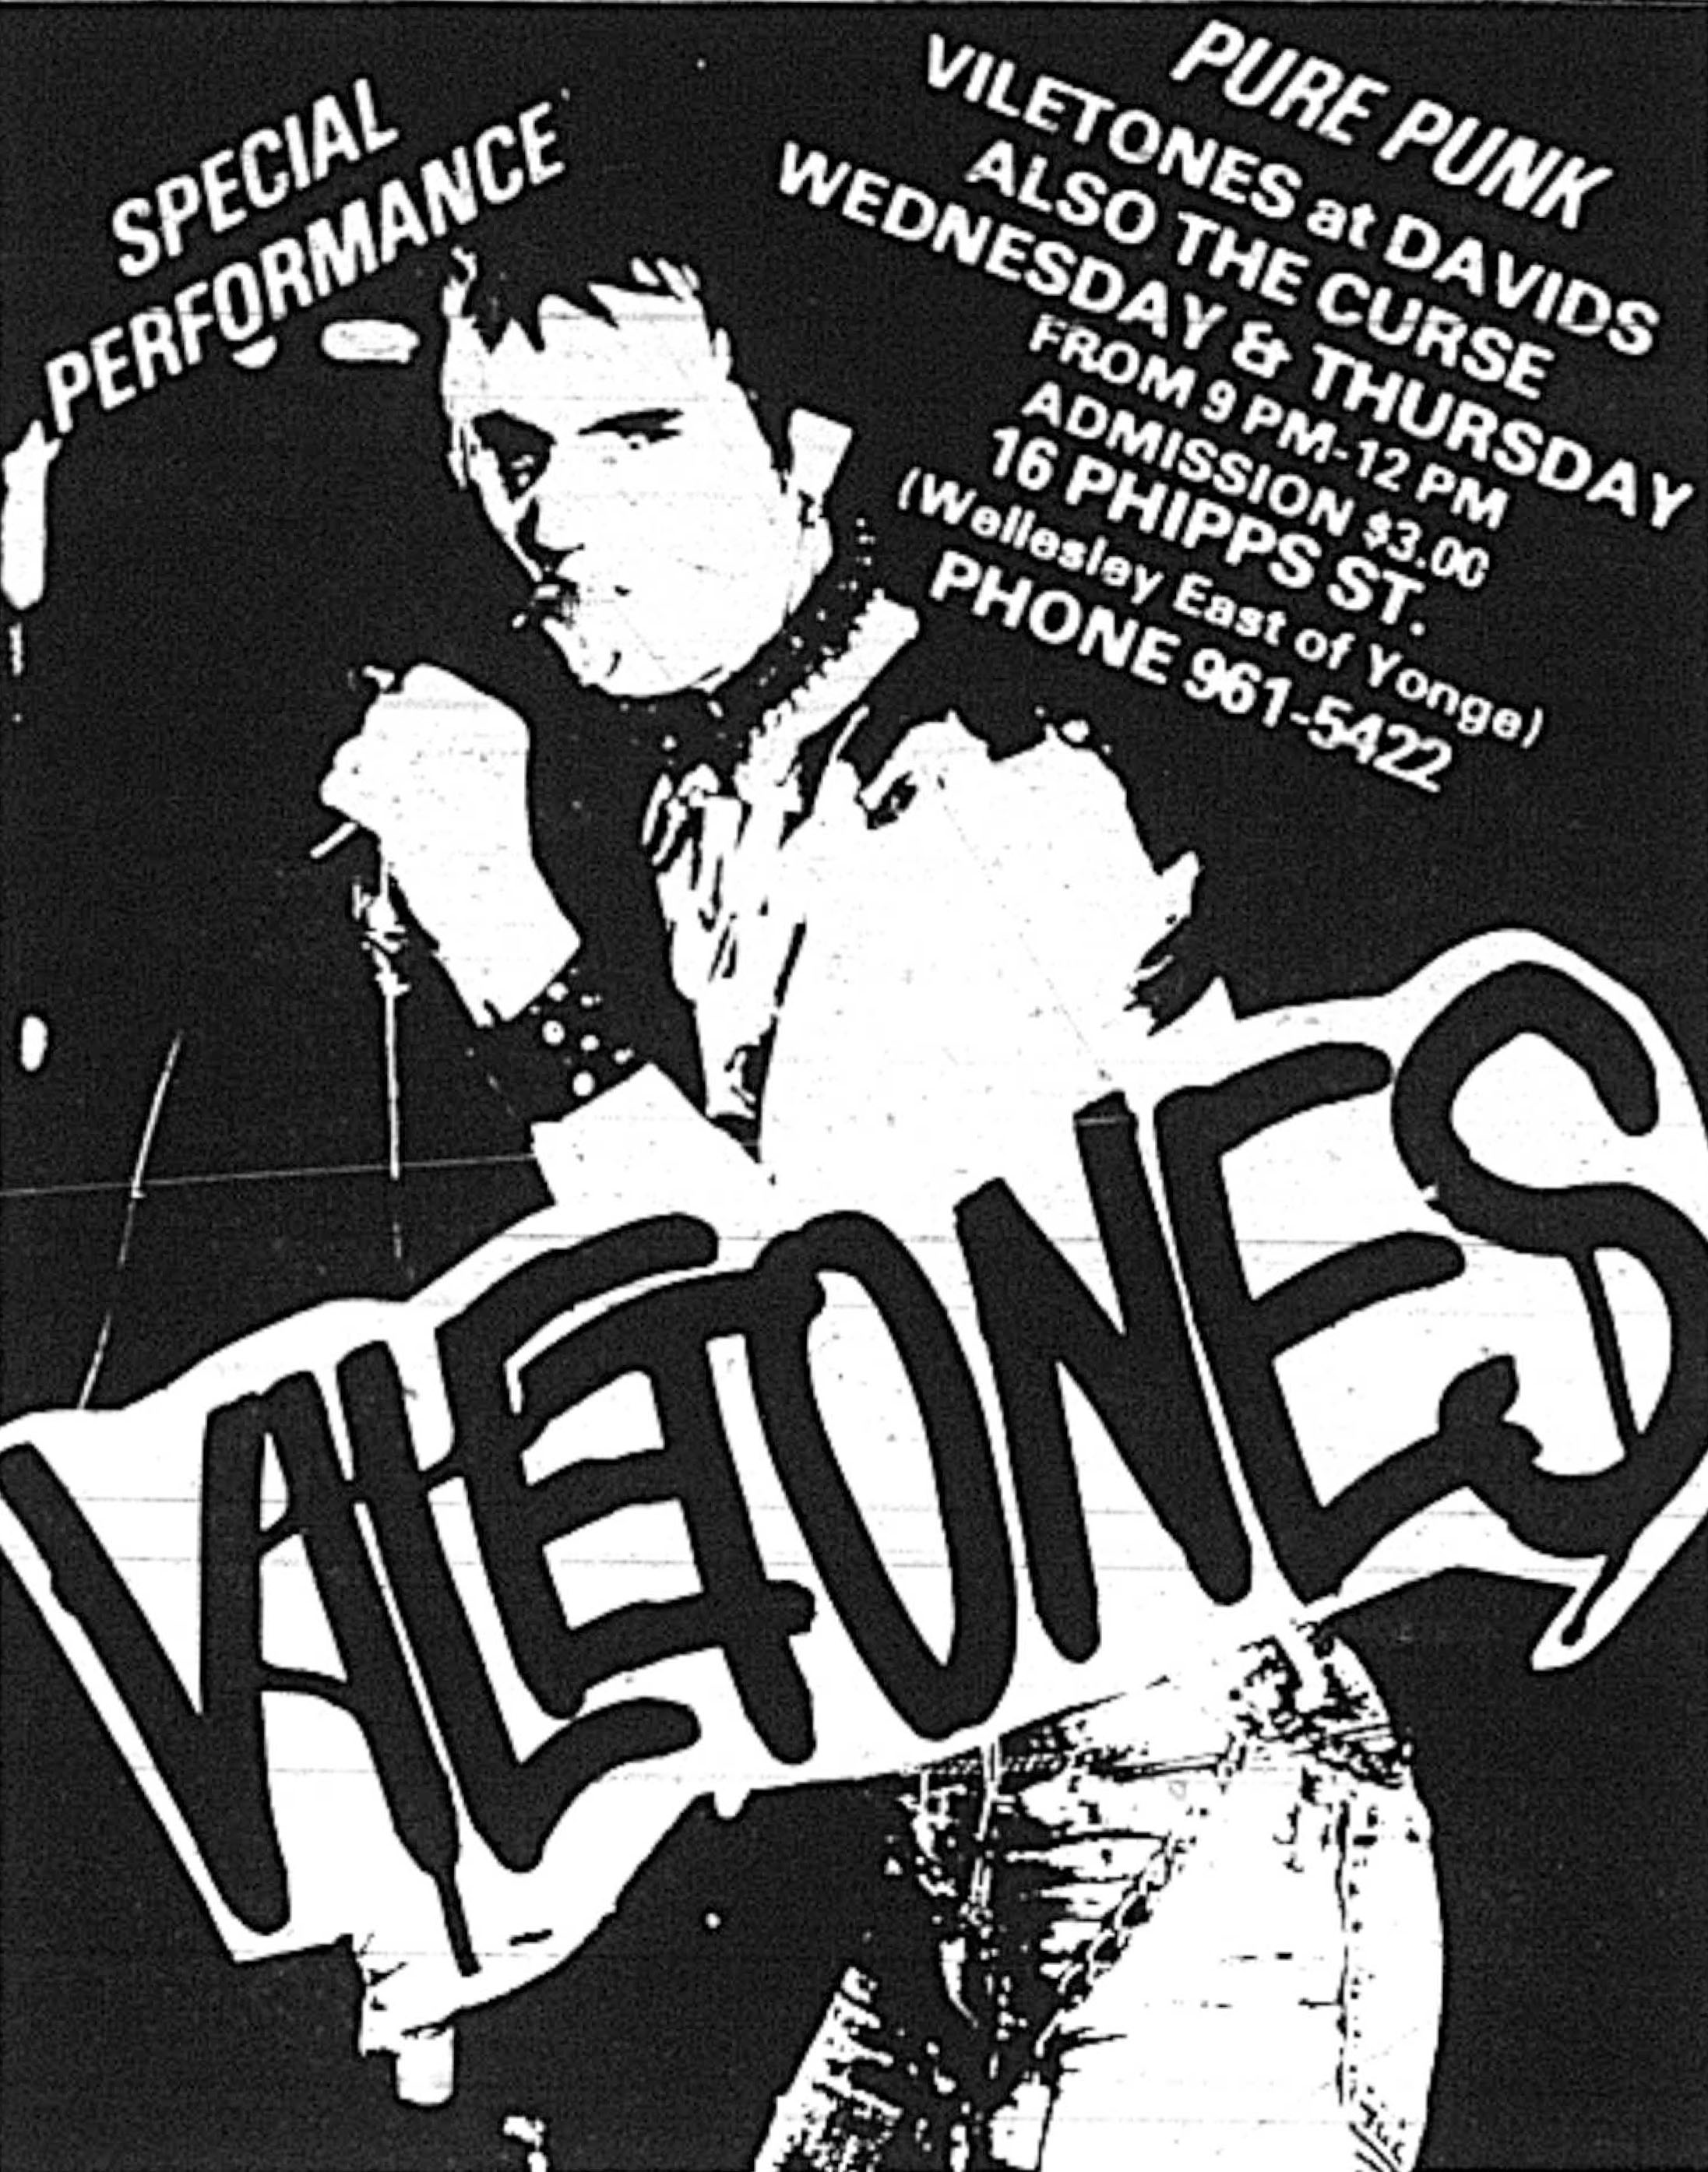 Advertisement for punk band Viletones playing at David's, Sandy LeBlanc's club